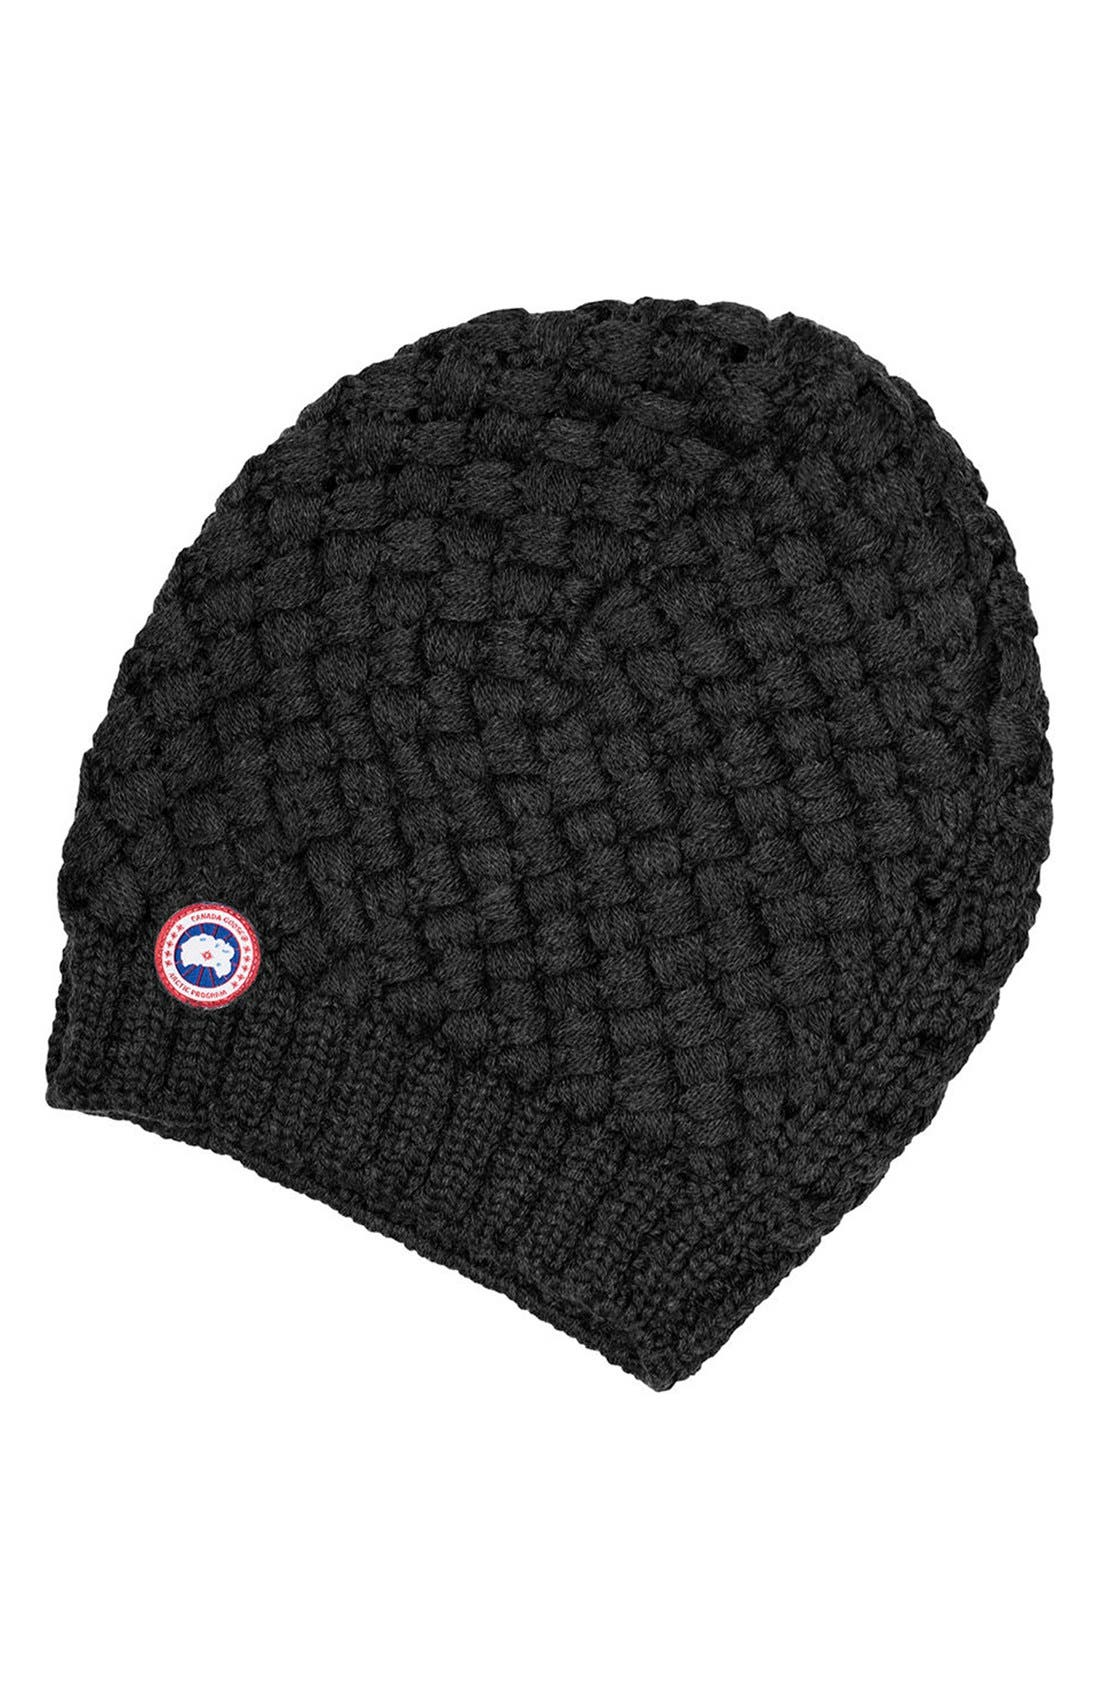 Canada Goose Slouchy Basketweave Beanie